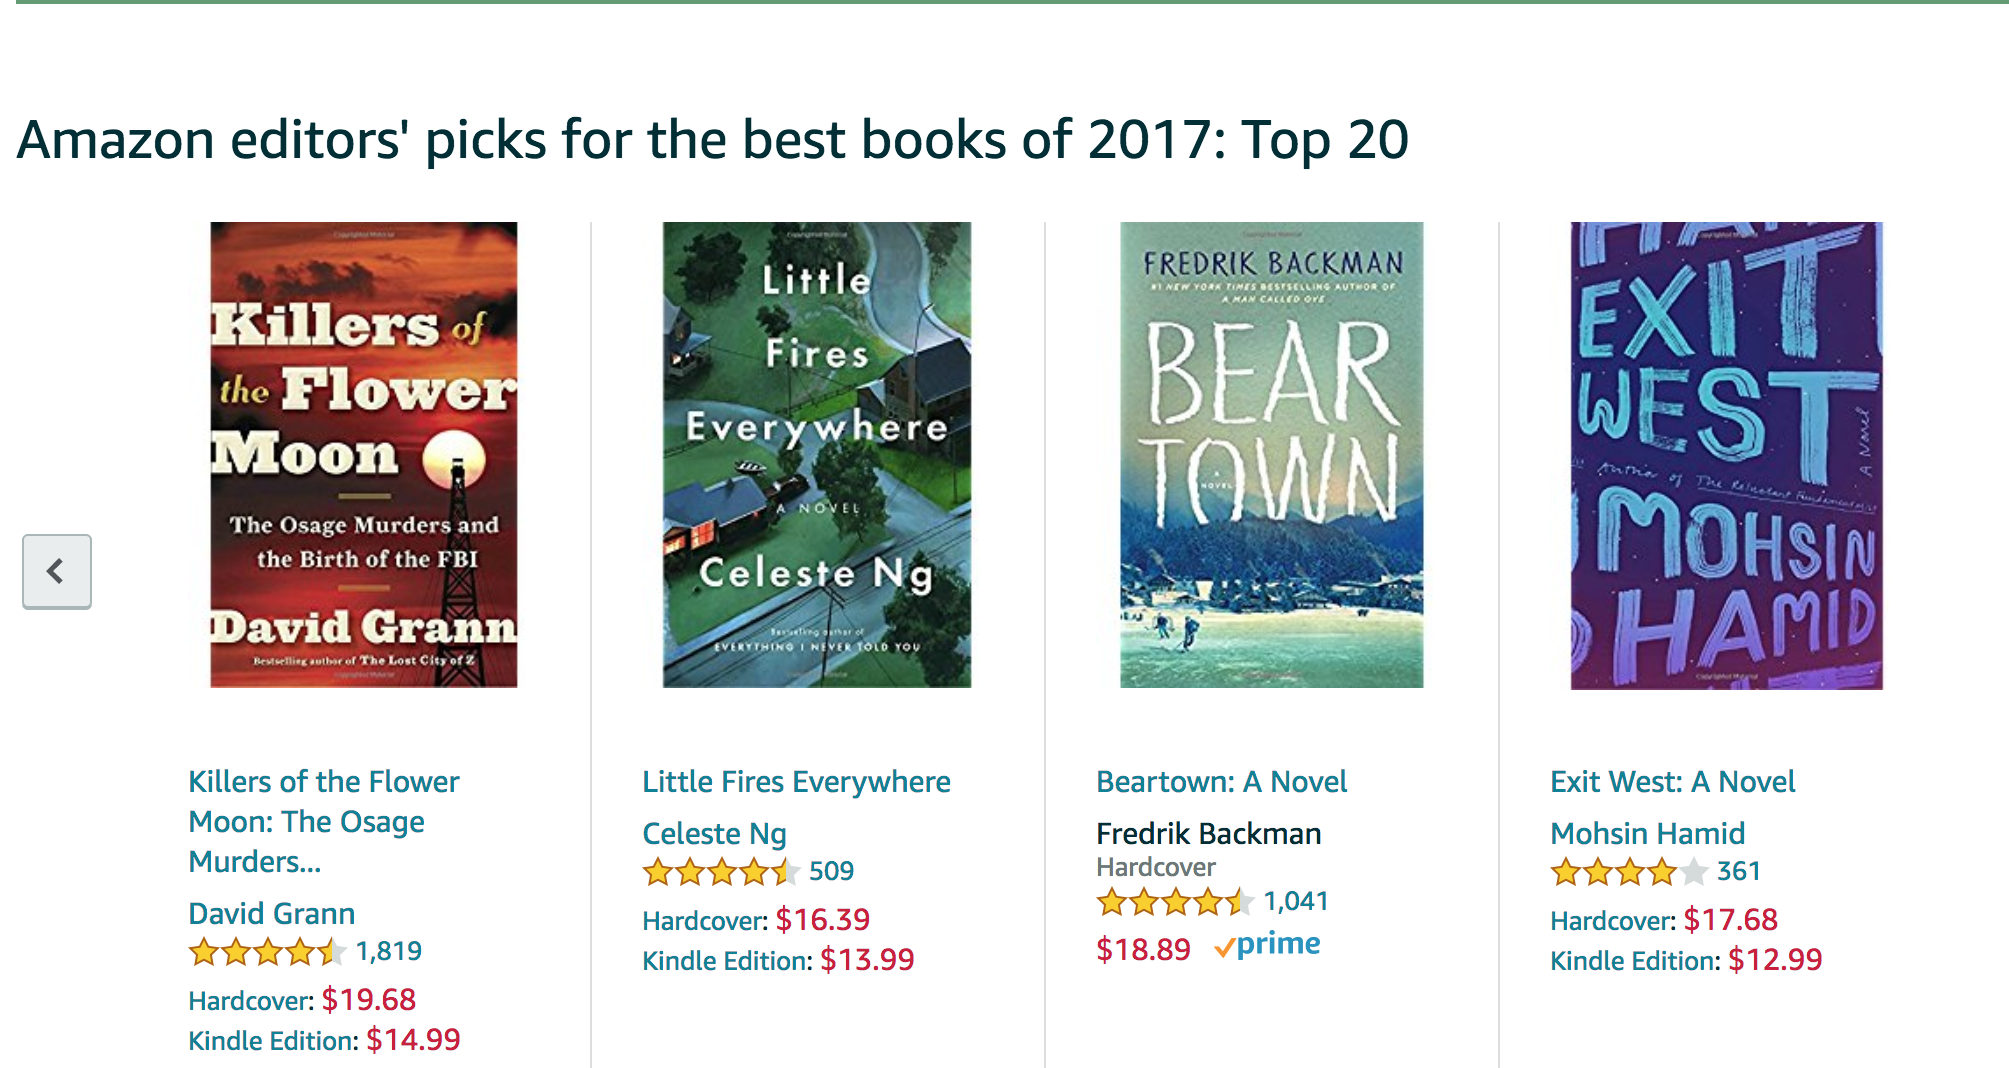 Amazon's Best Books of 2017: Critical Linking, November 10